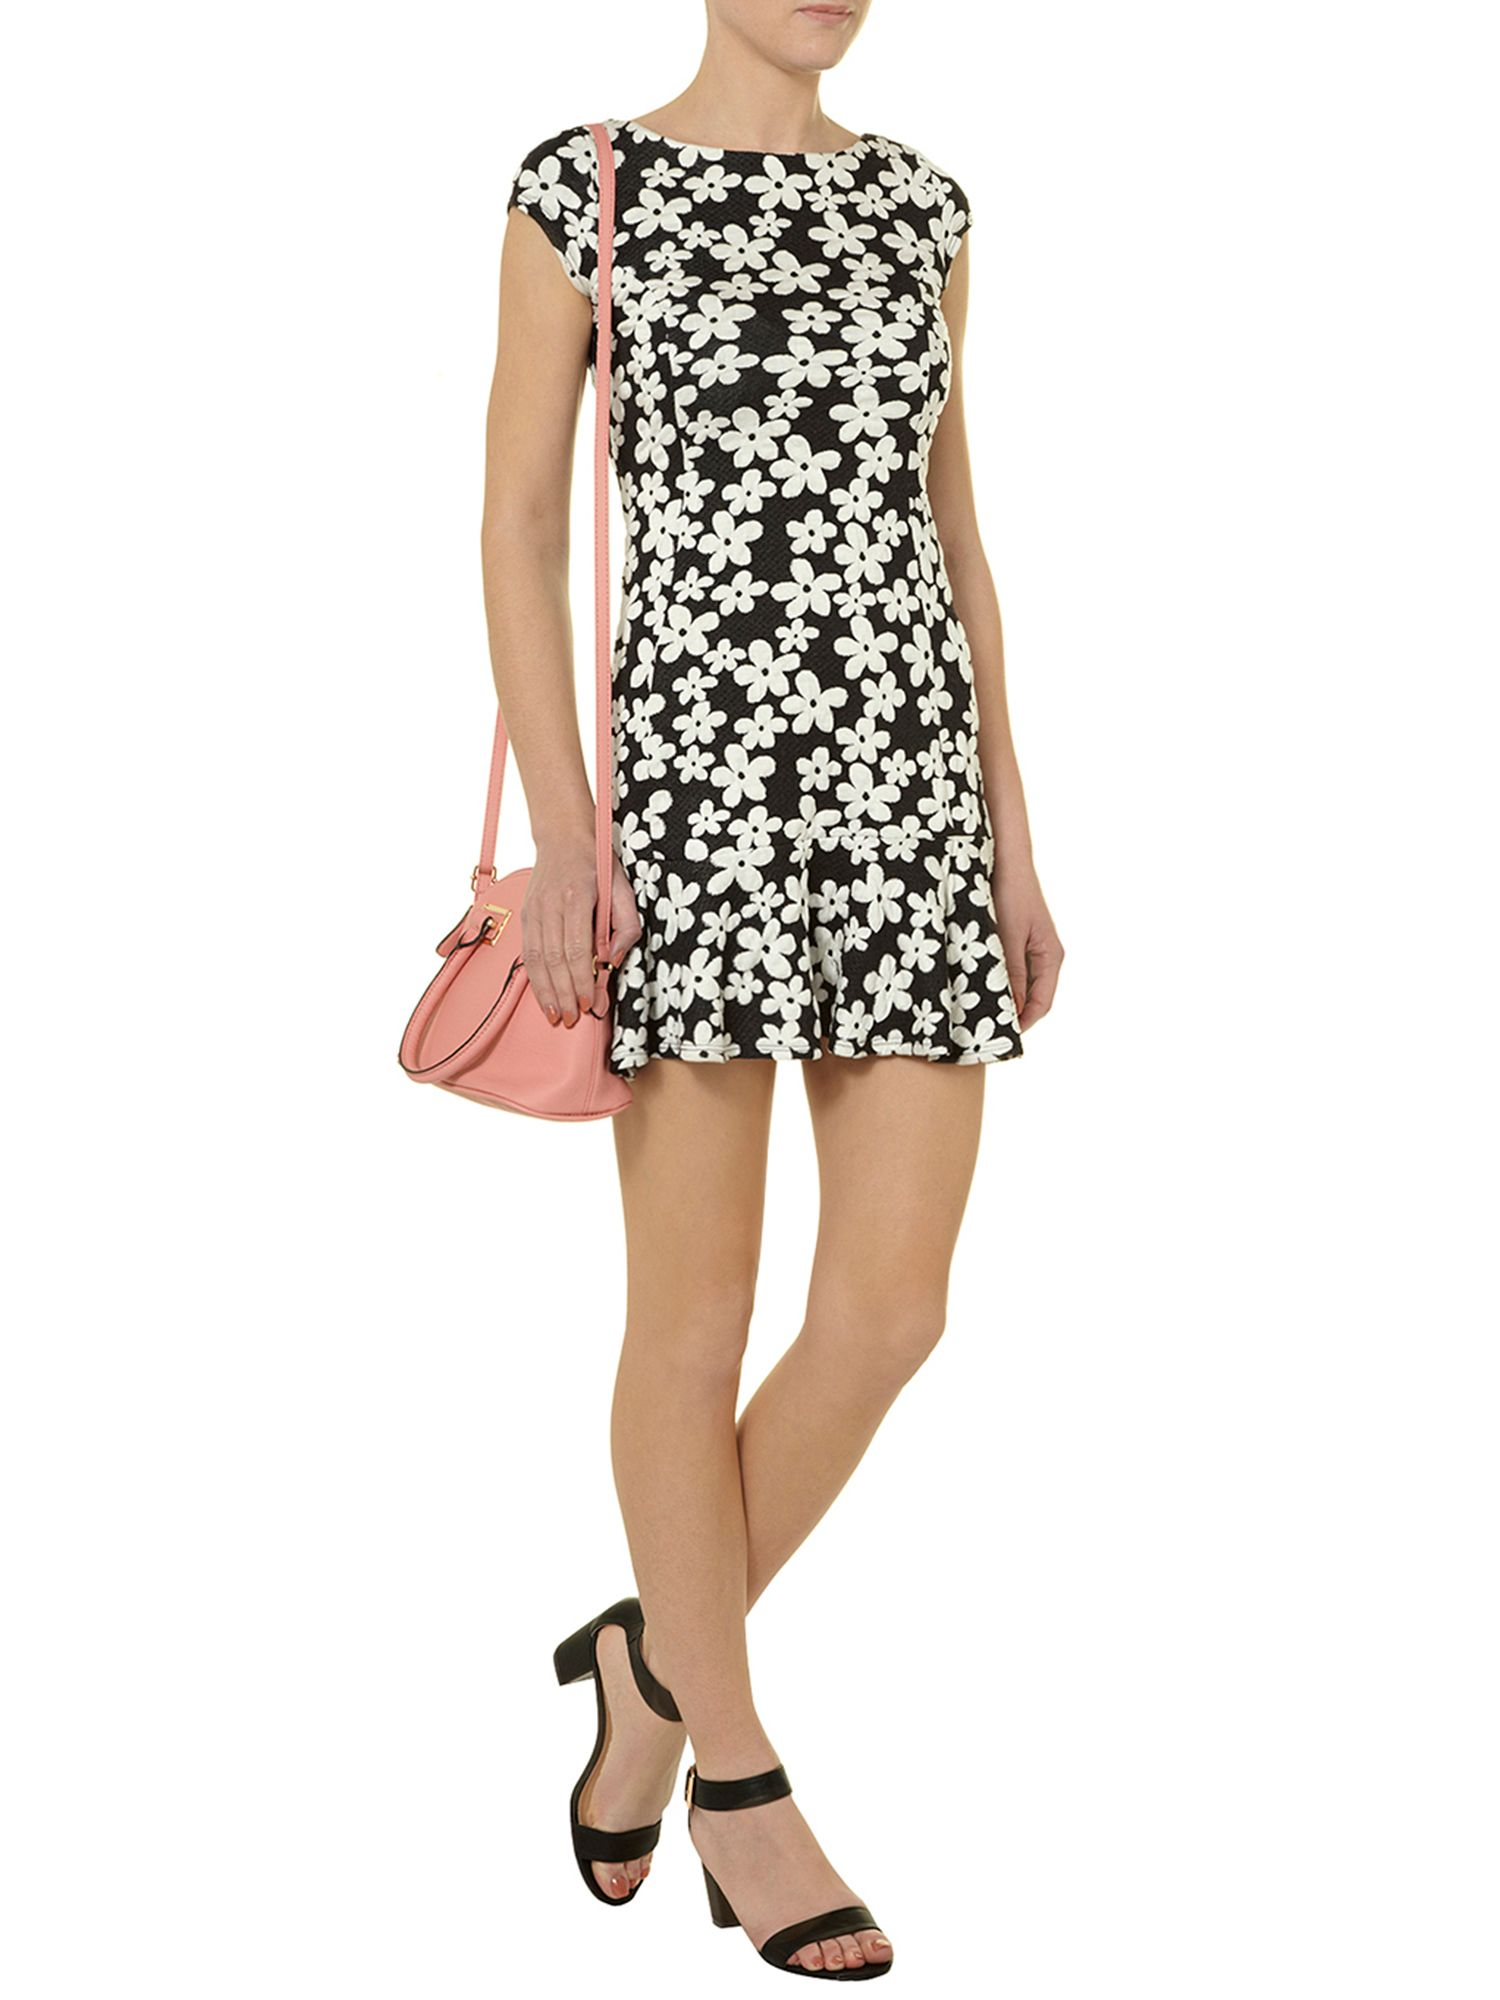 Daisy print pephem dress